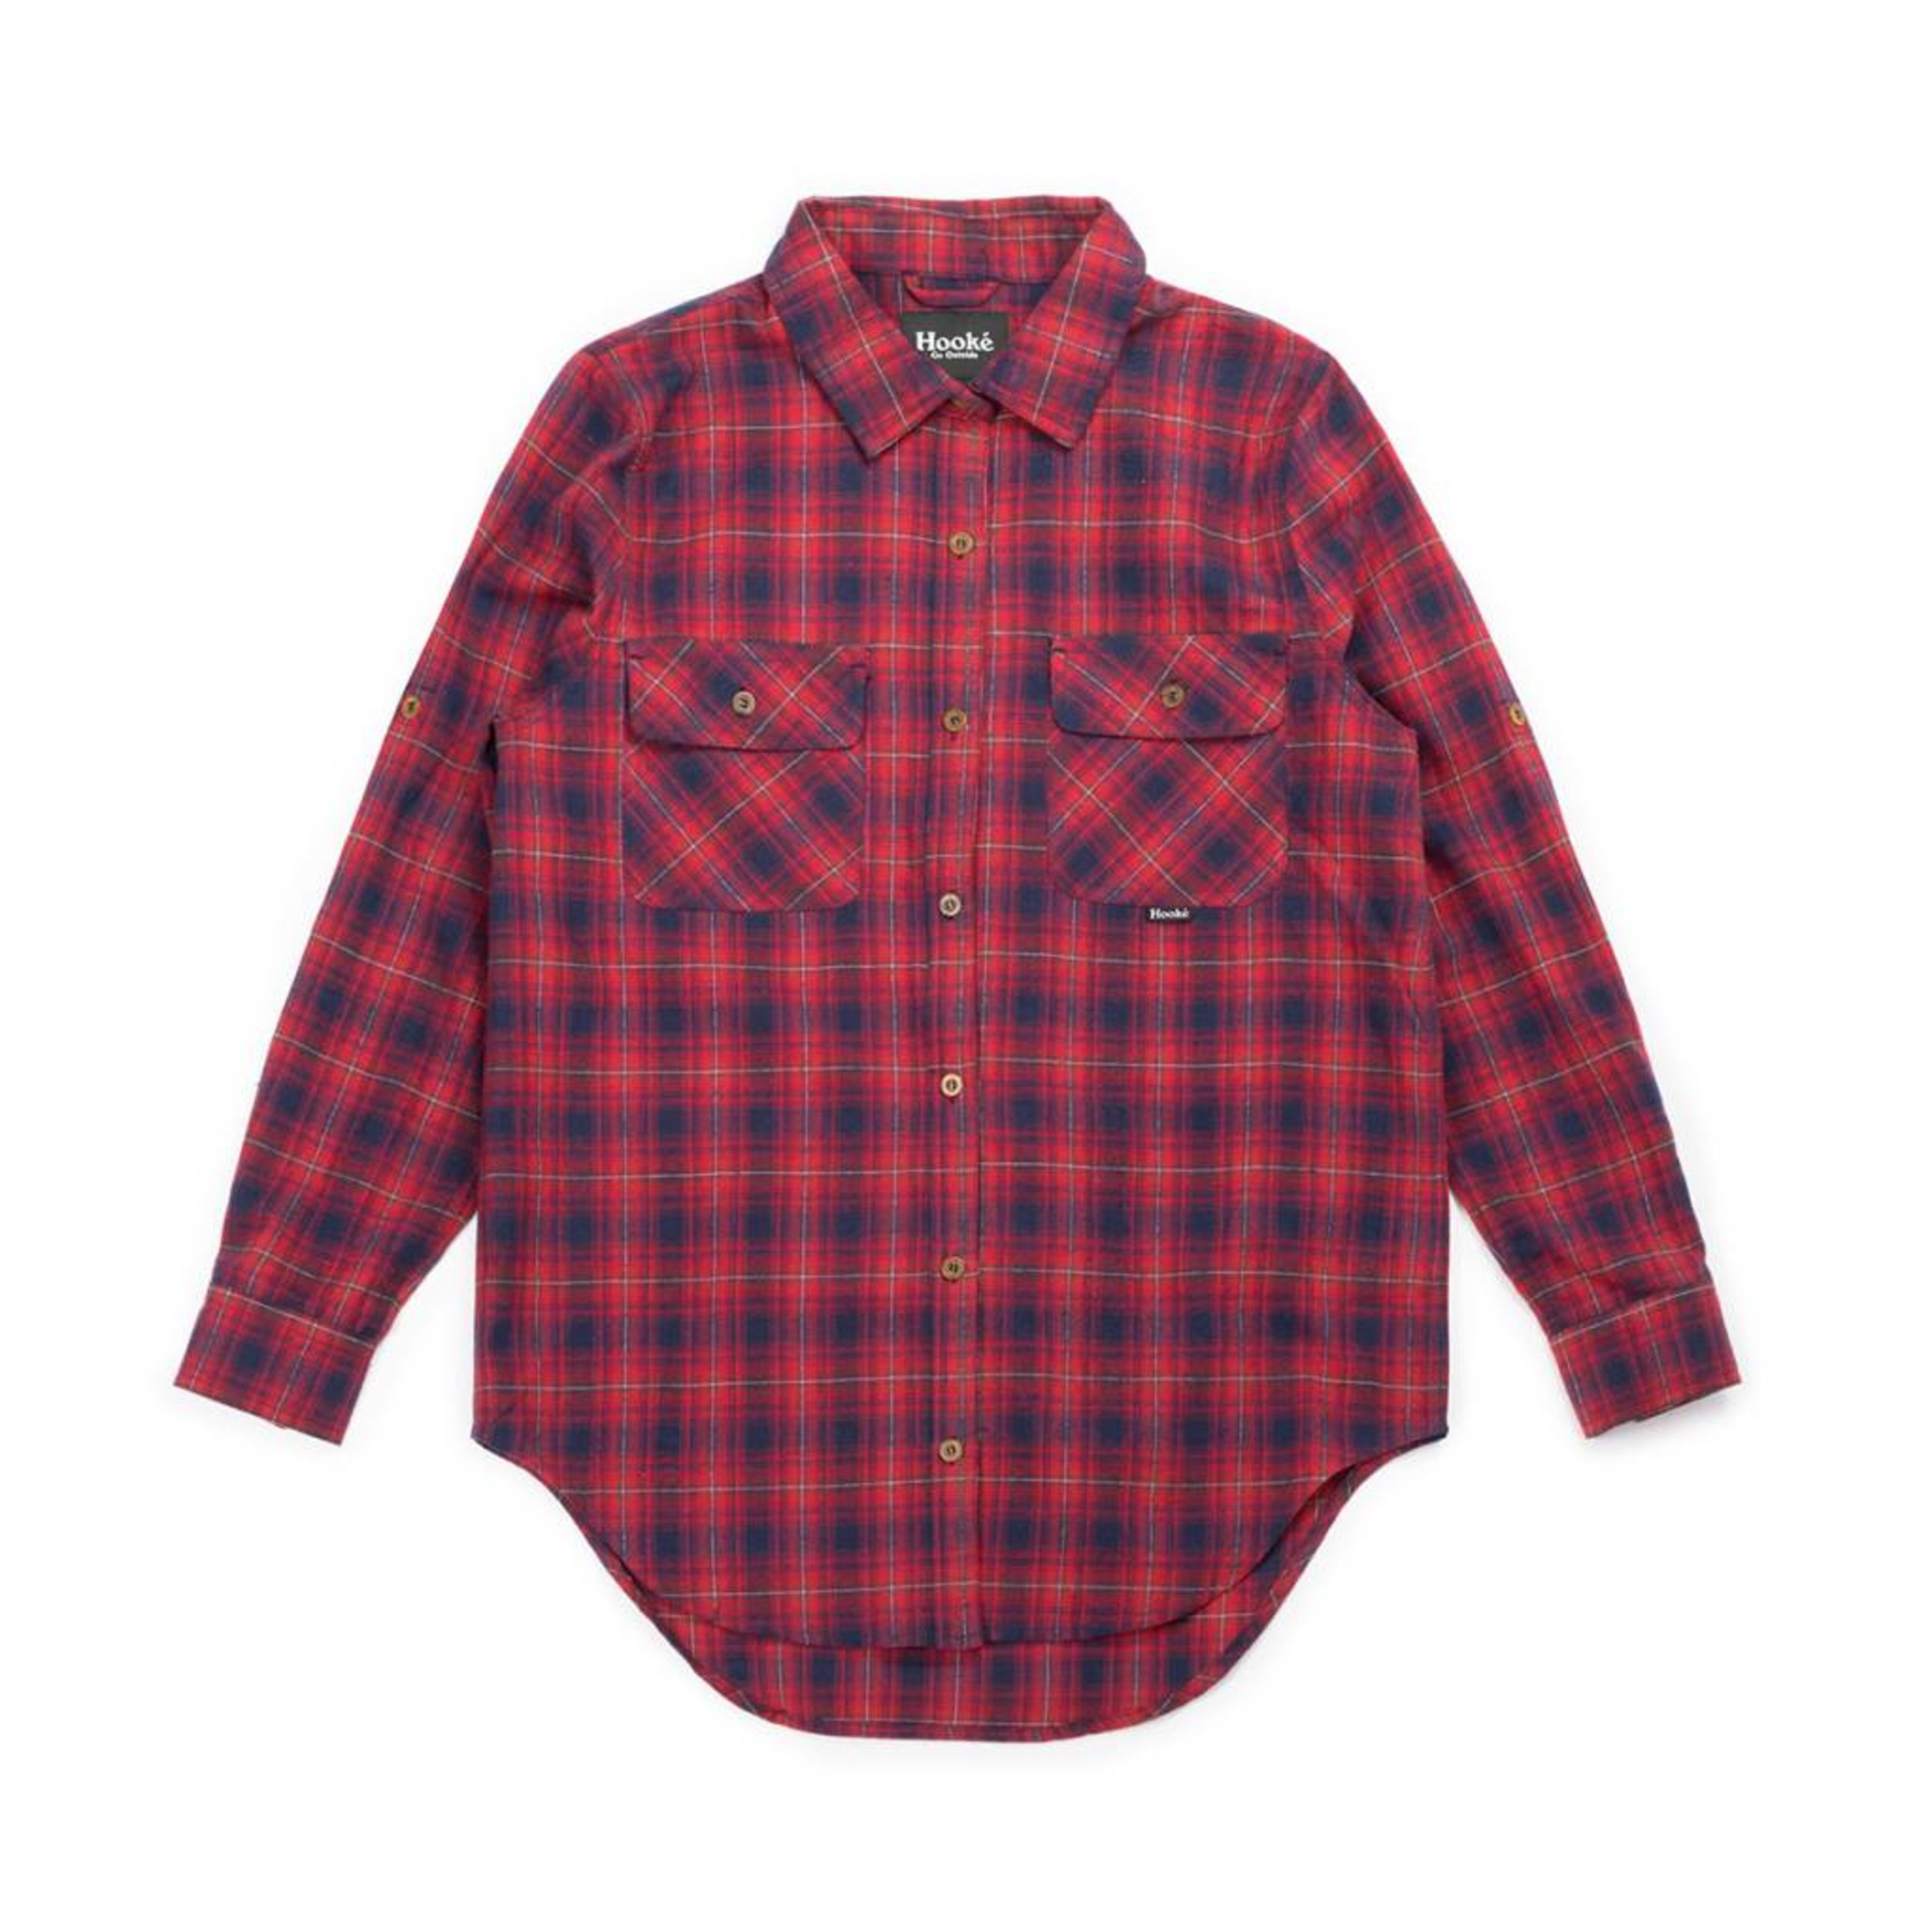 2ed902b5e8c Women s Skeena Shirt Navy   Red Plaid